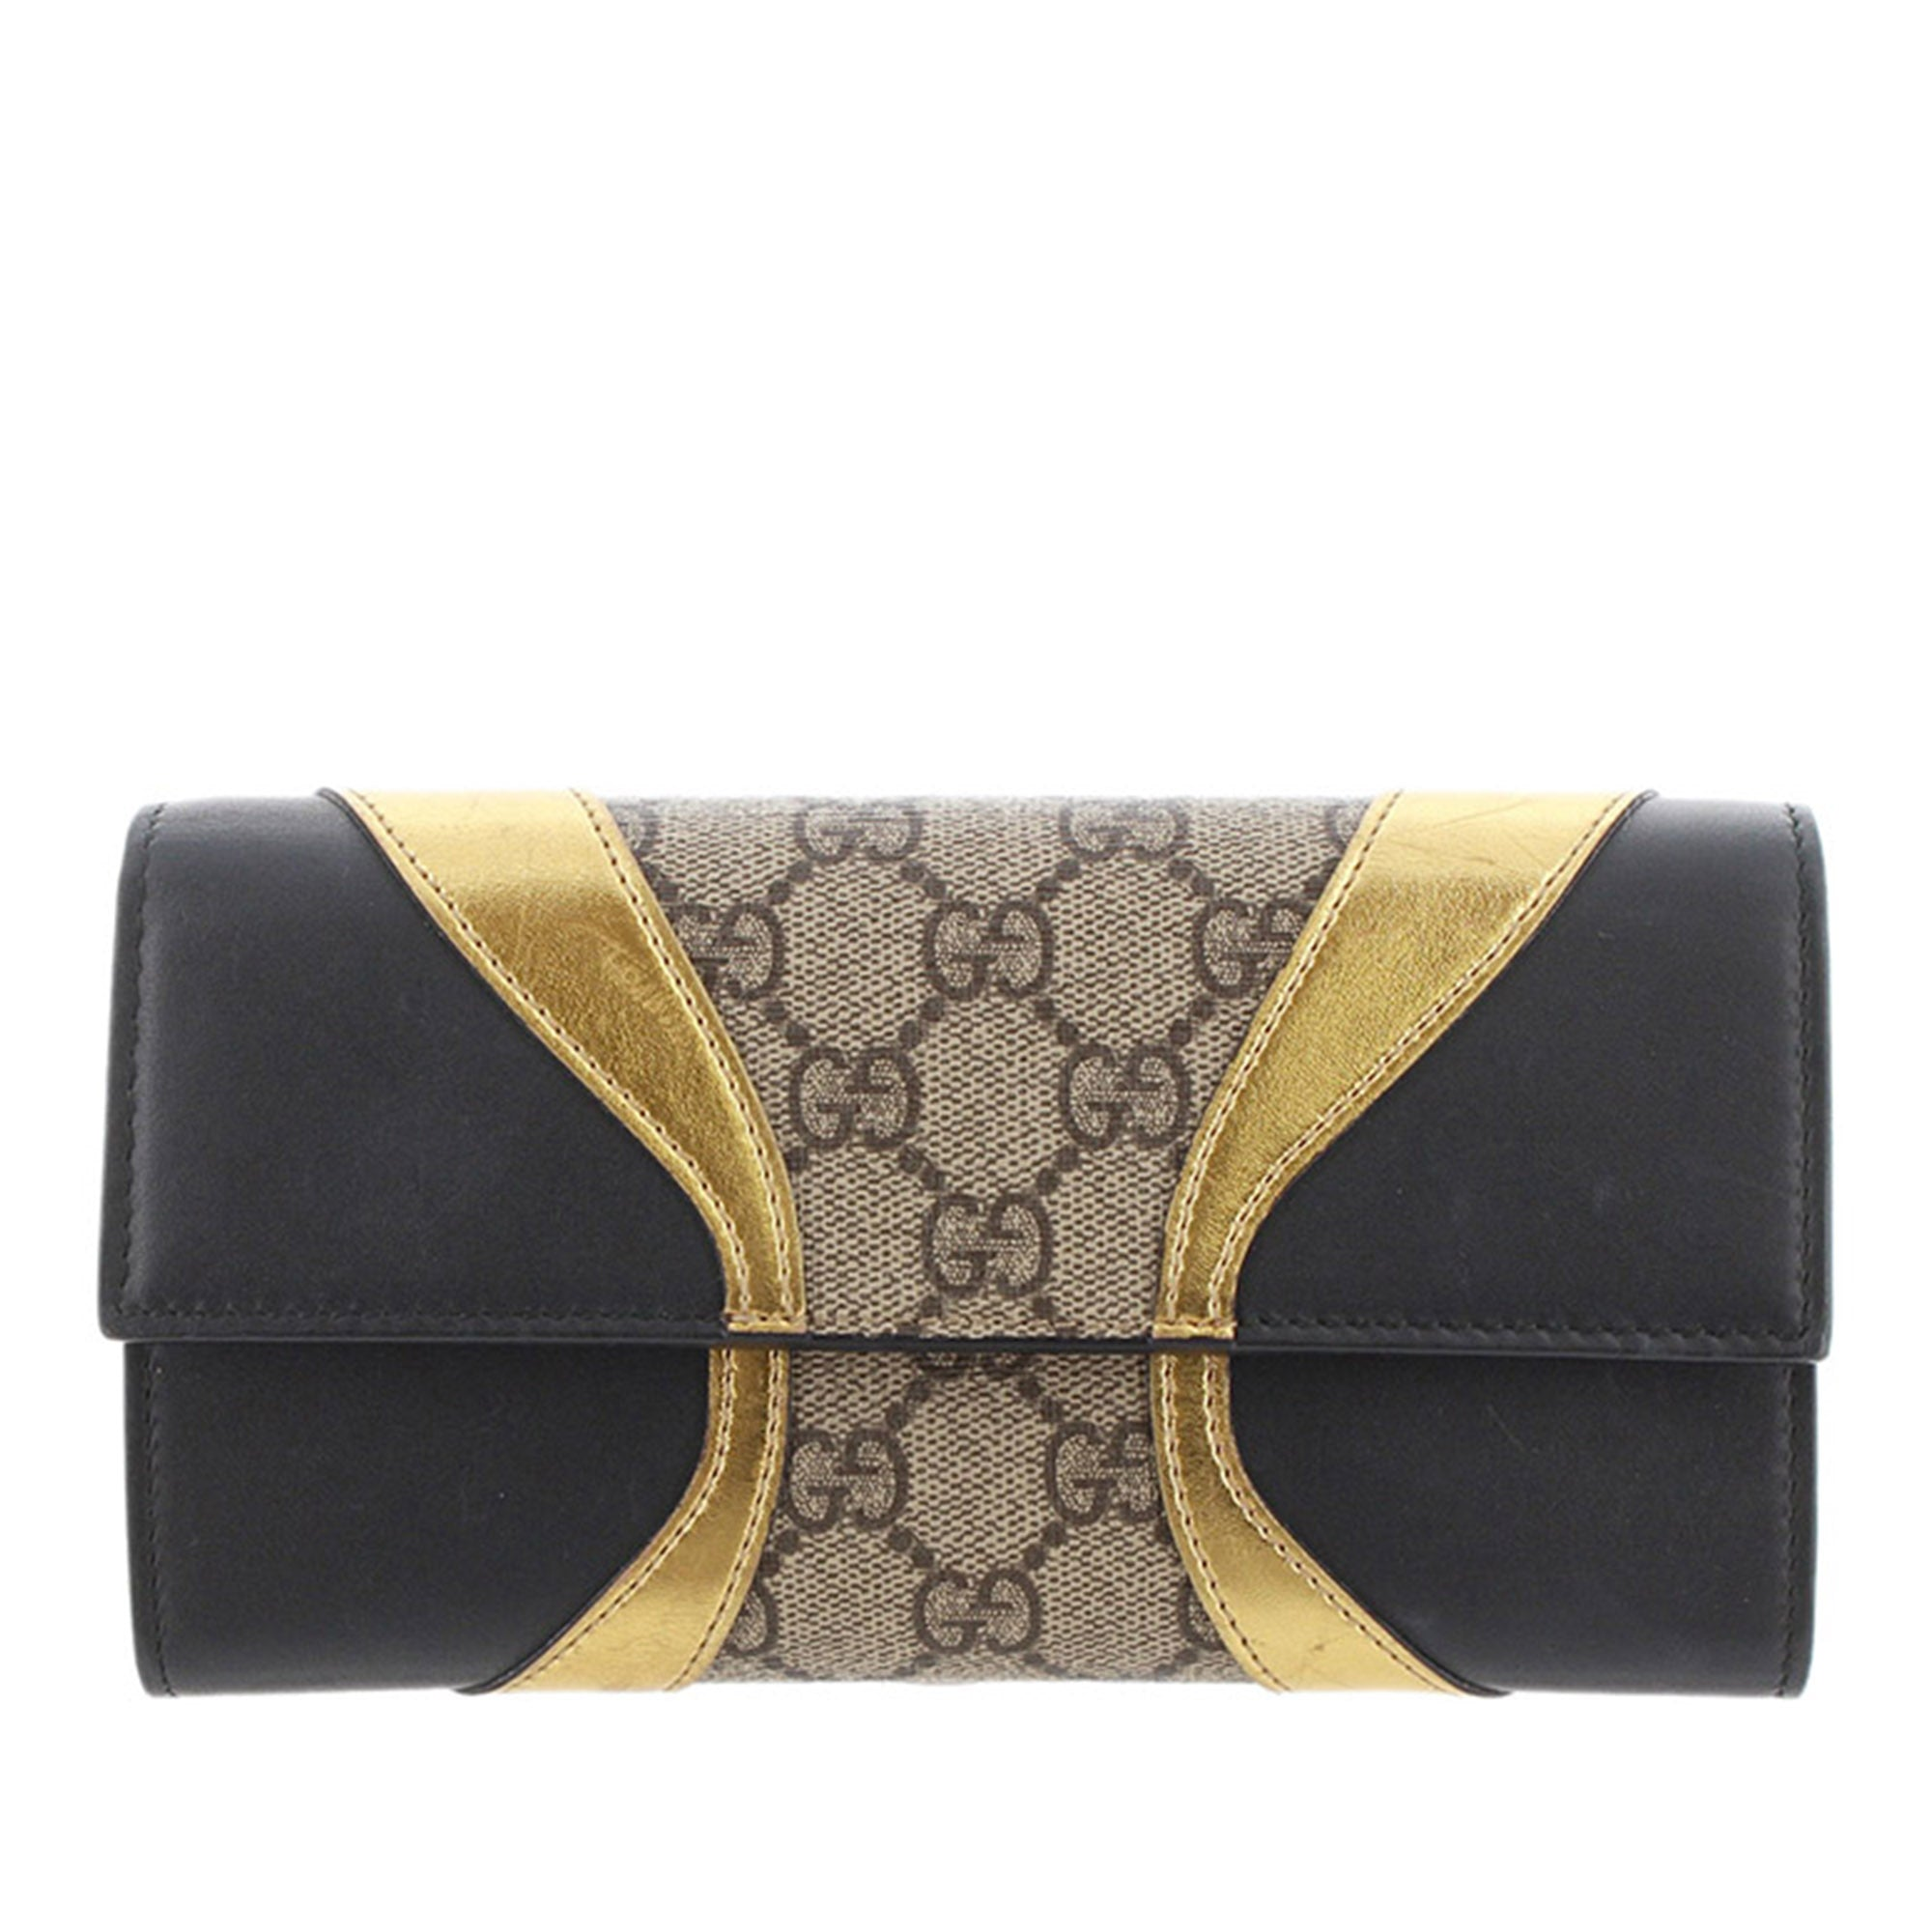 Gucci Brown GG Supreme Osiride Long Wallet